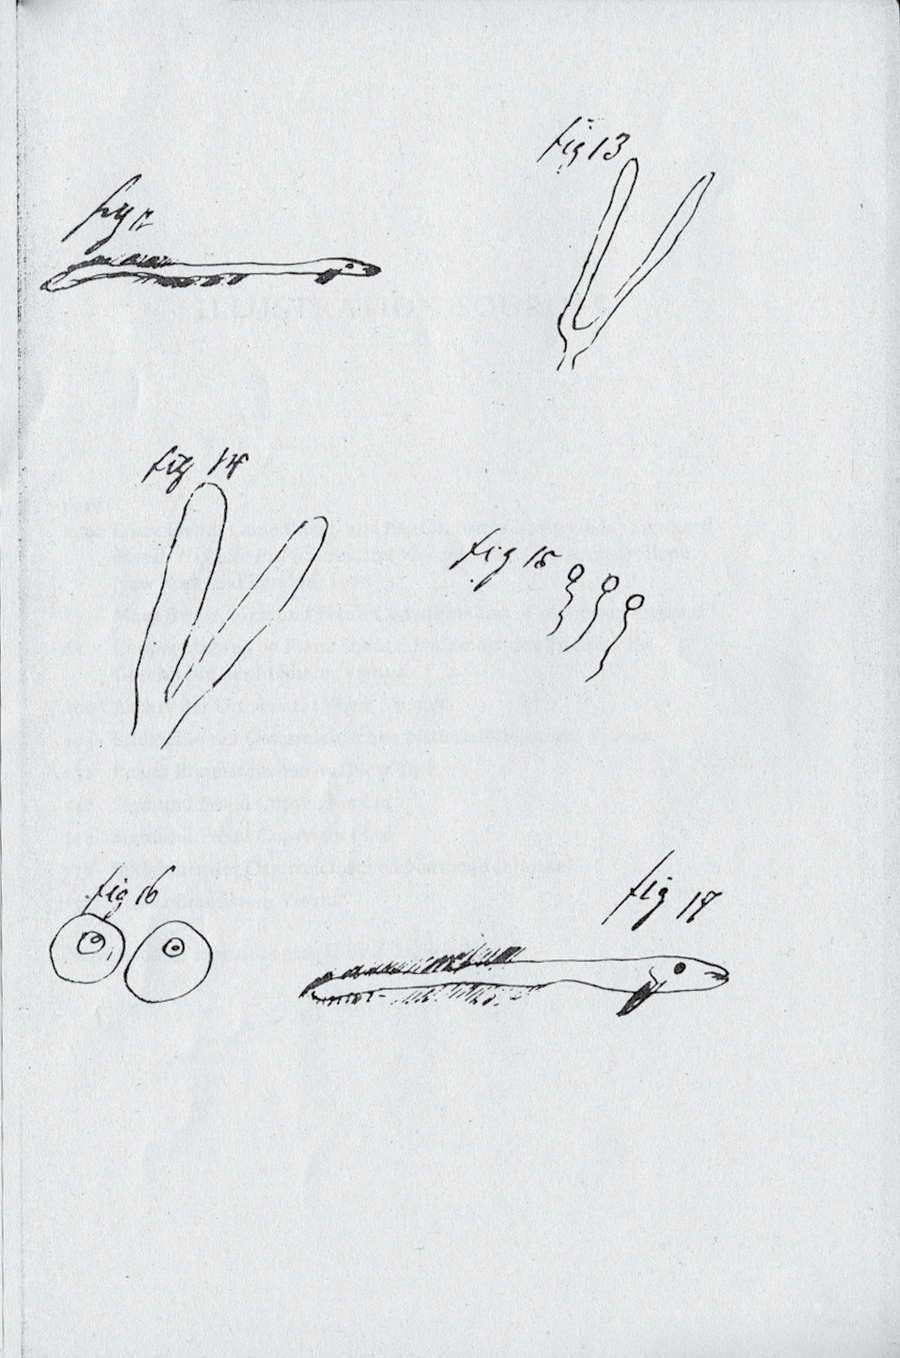 Dessins de Sigmund Freud